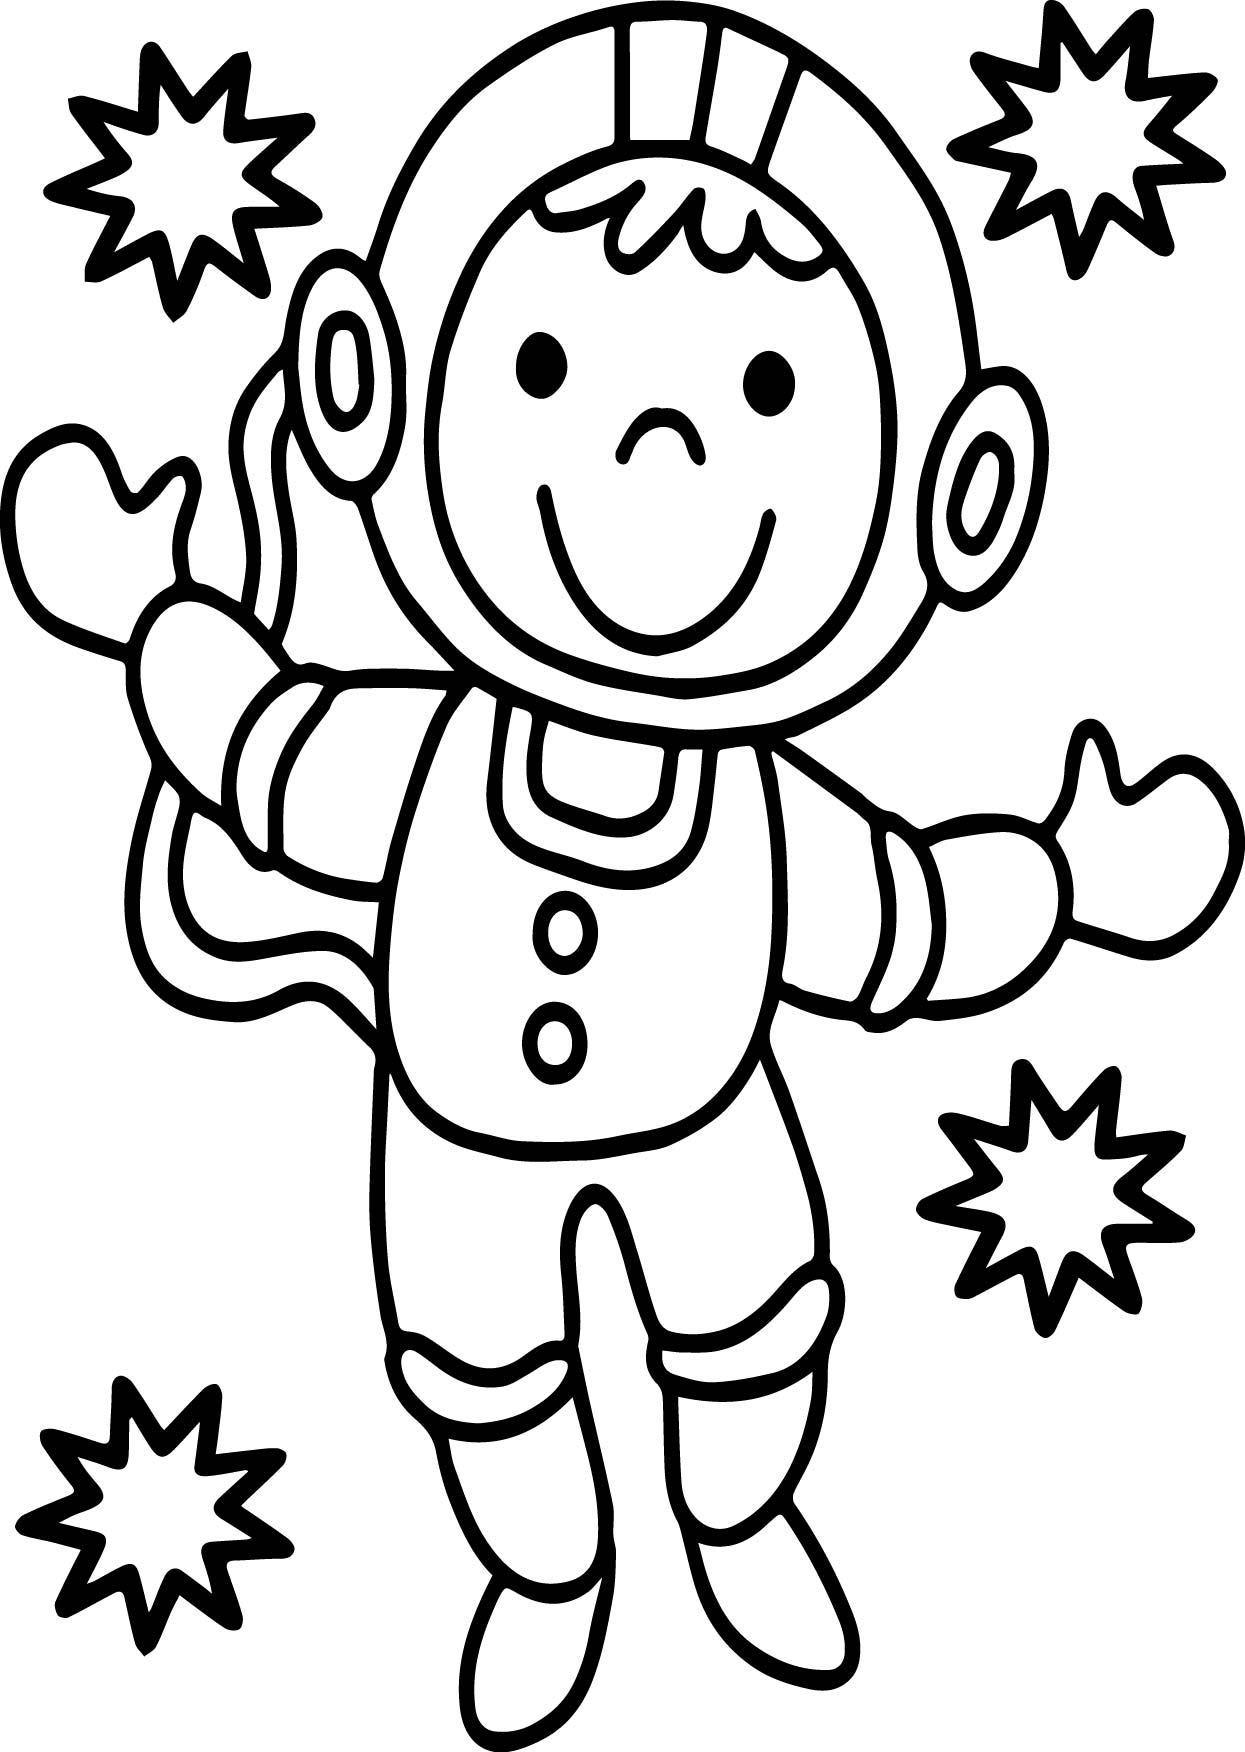 Astronaut Monkey Coloring Page